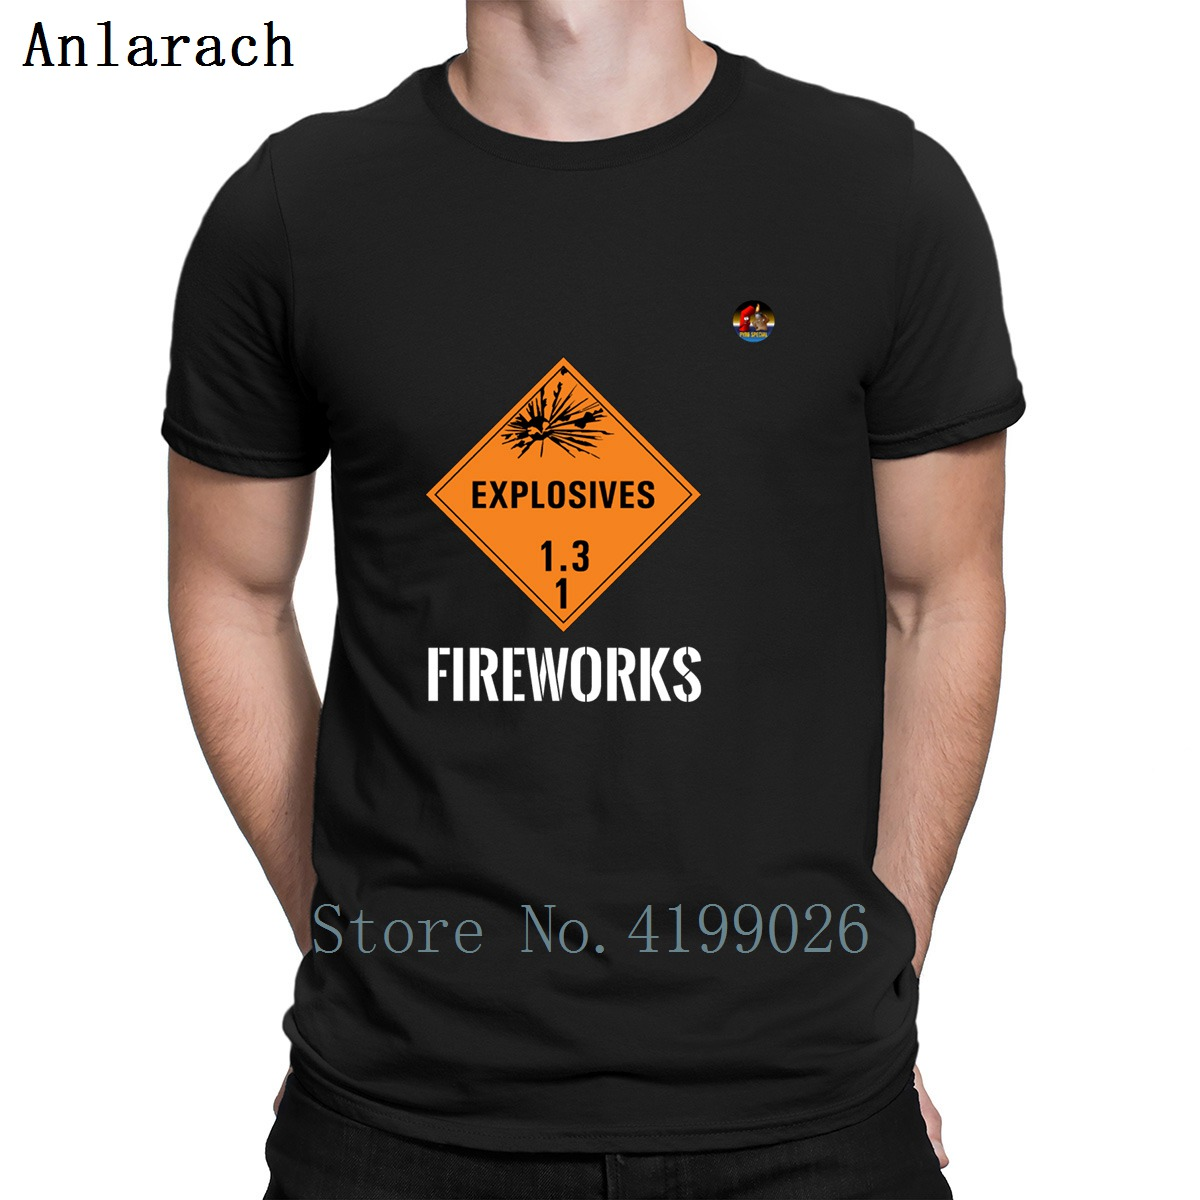 Amiable Explosives Fireworks Tshirts Tops Cotton Printed Gents Men's Tshirt New Original Summer Style Anlarach Interesting Excellent In Cushion Effect